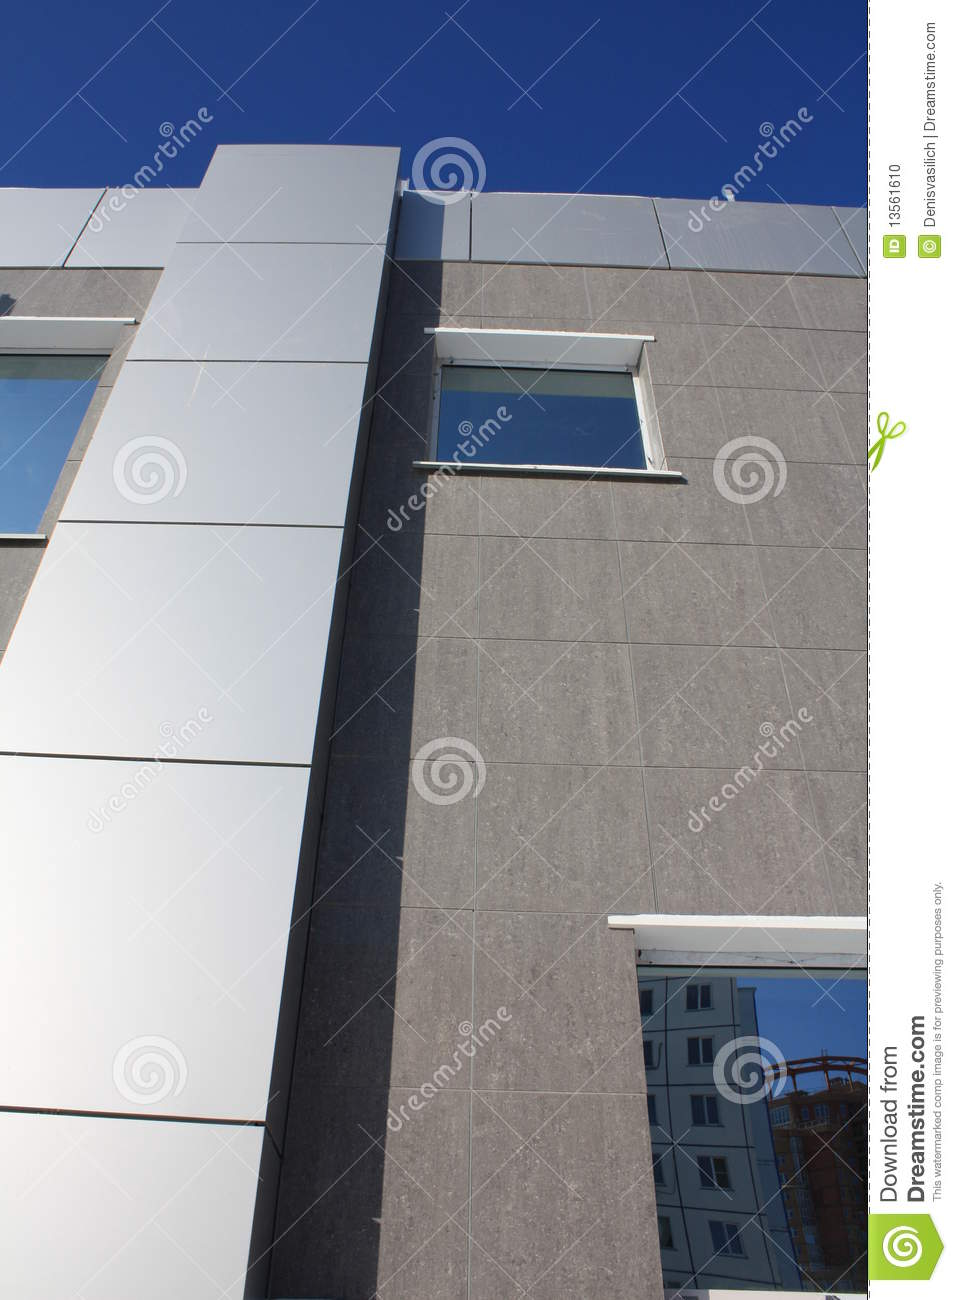 Finishing Building Facade With Modern Materials Stock